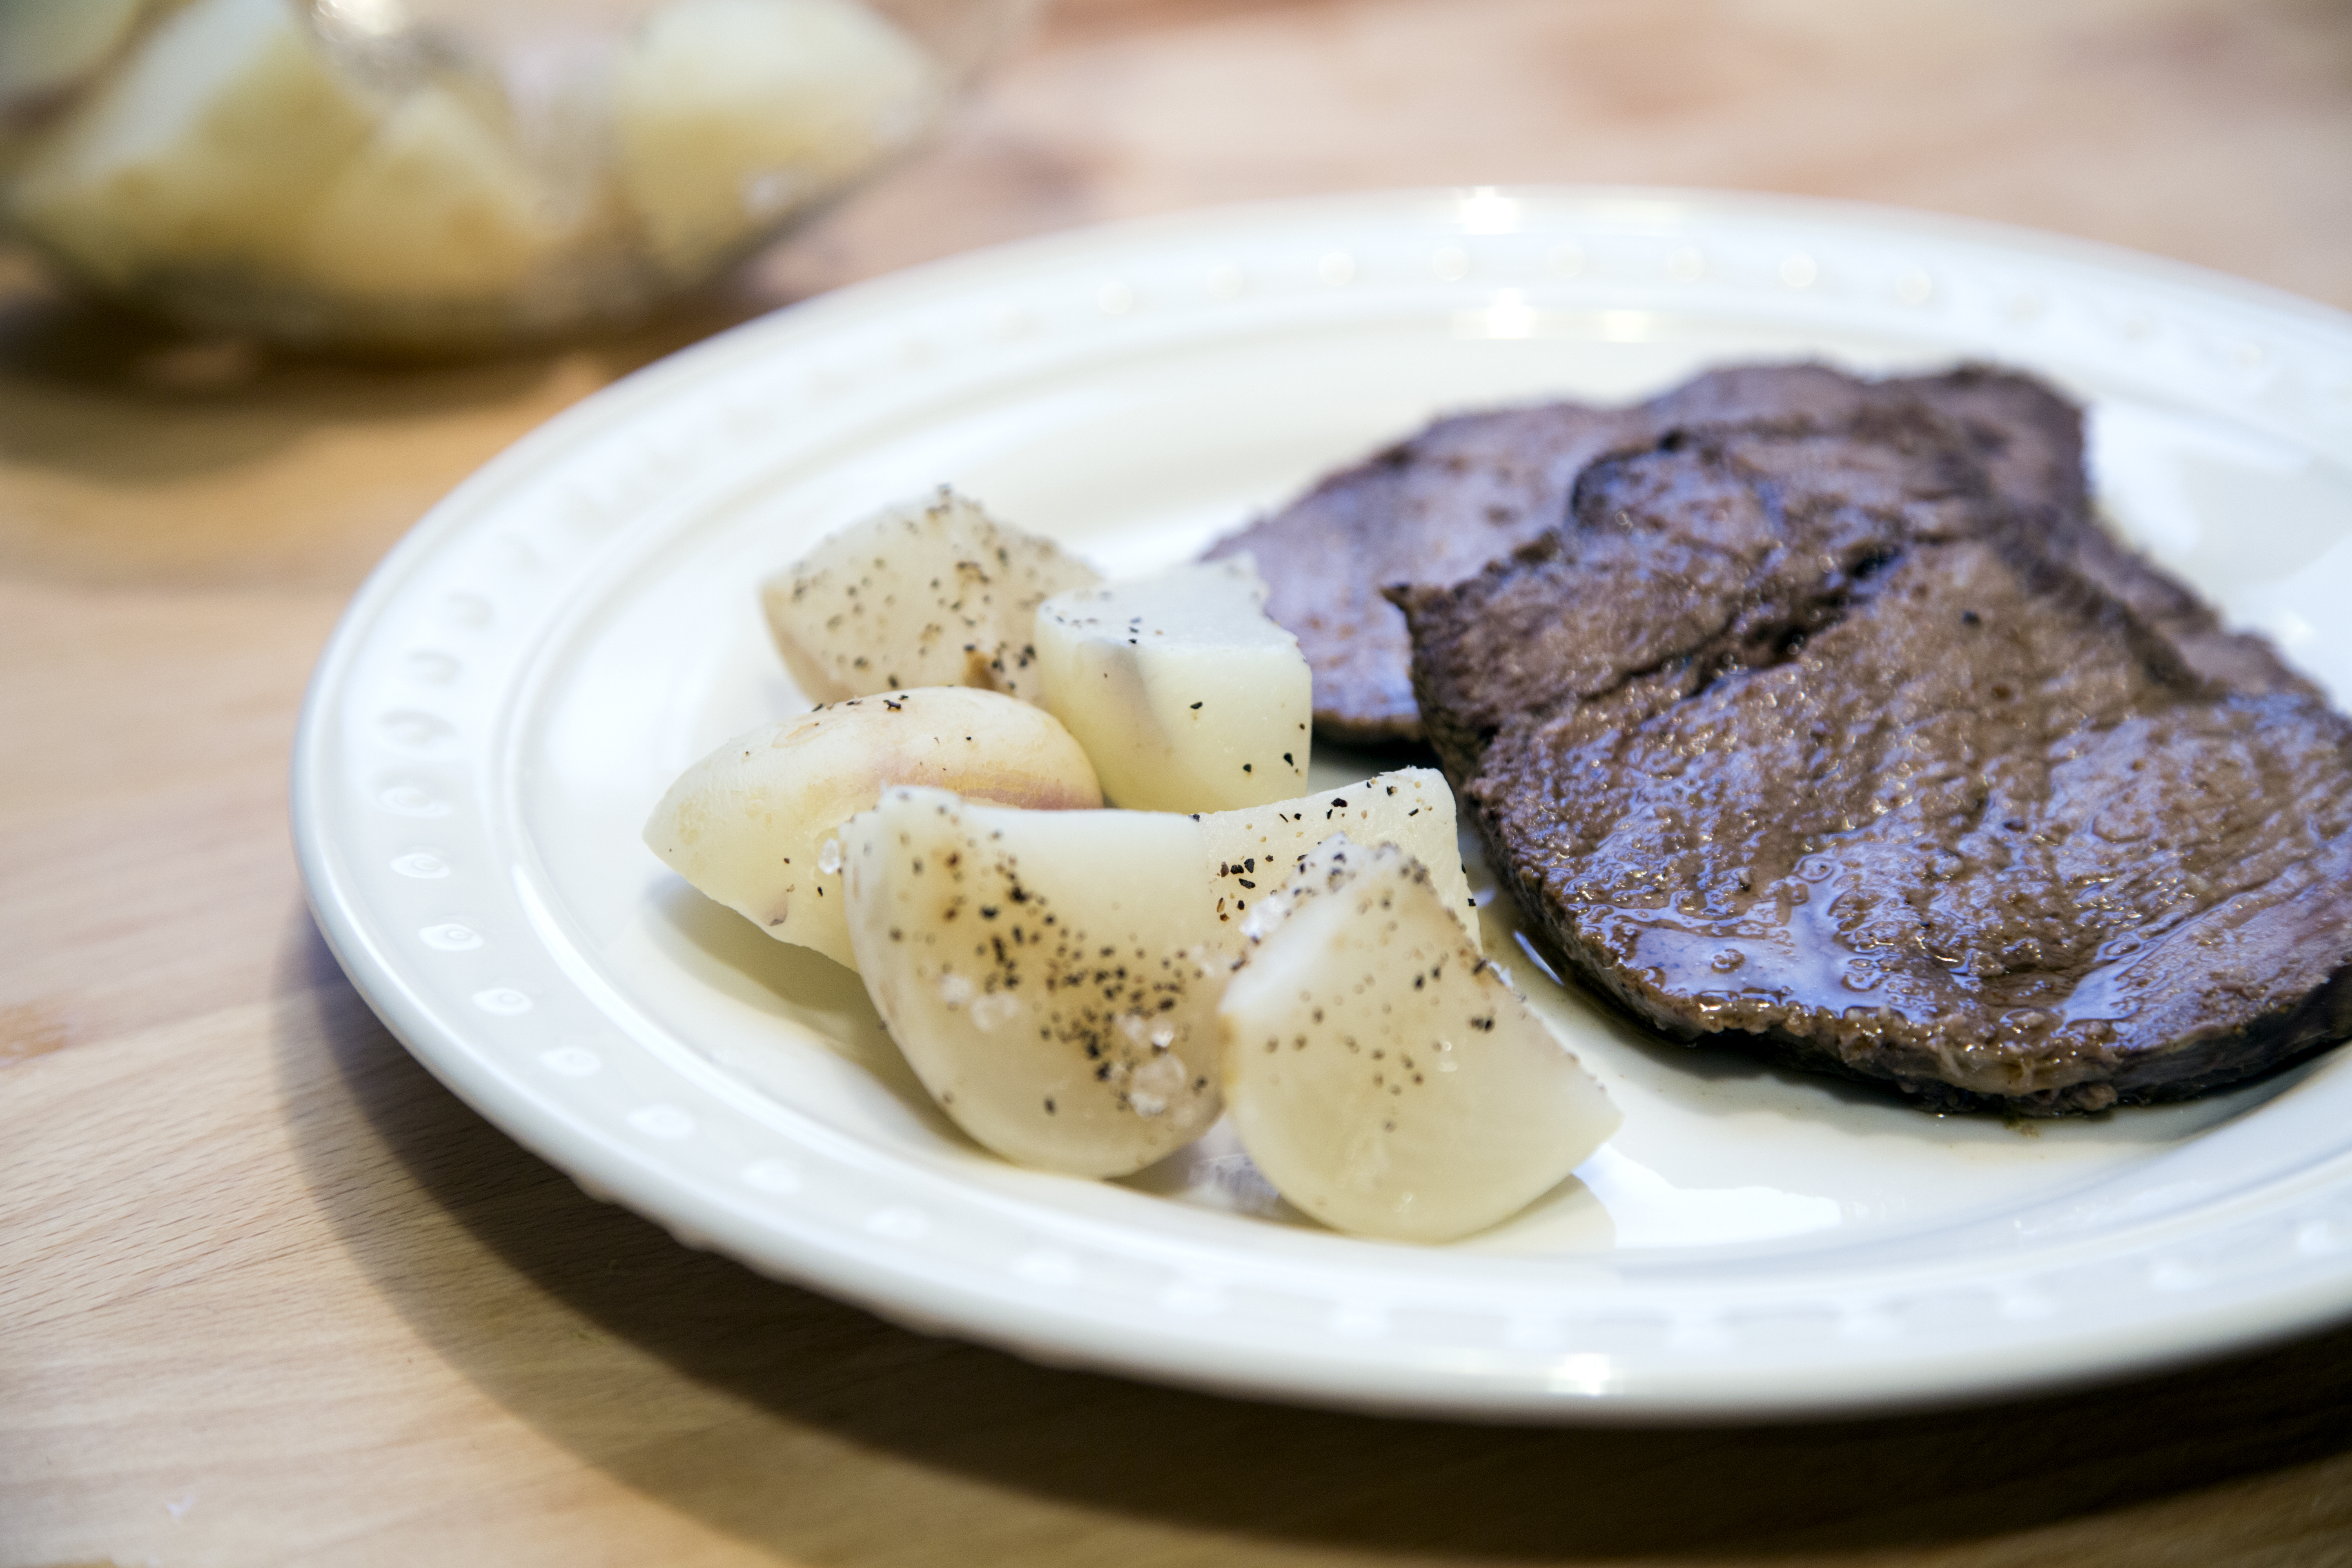 Discussion on this topic: 5 Ways to Cook Turnips, 5-ways-to-cook-turnips/